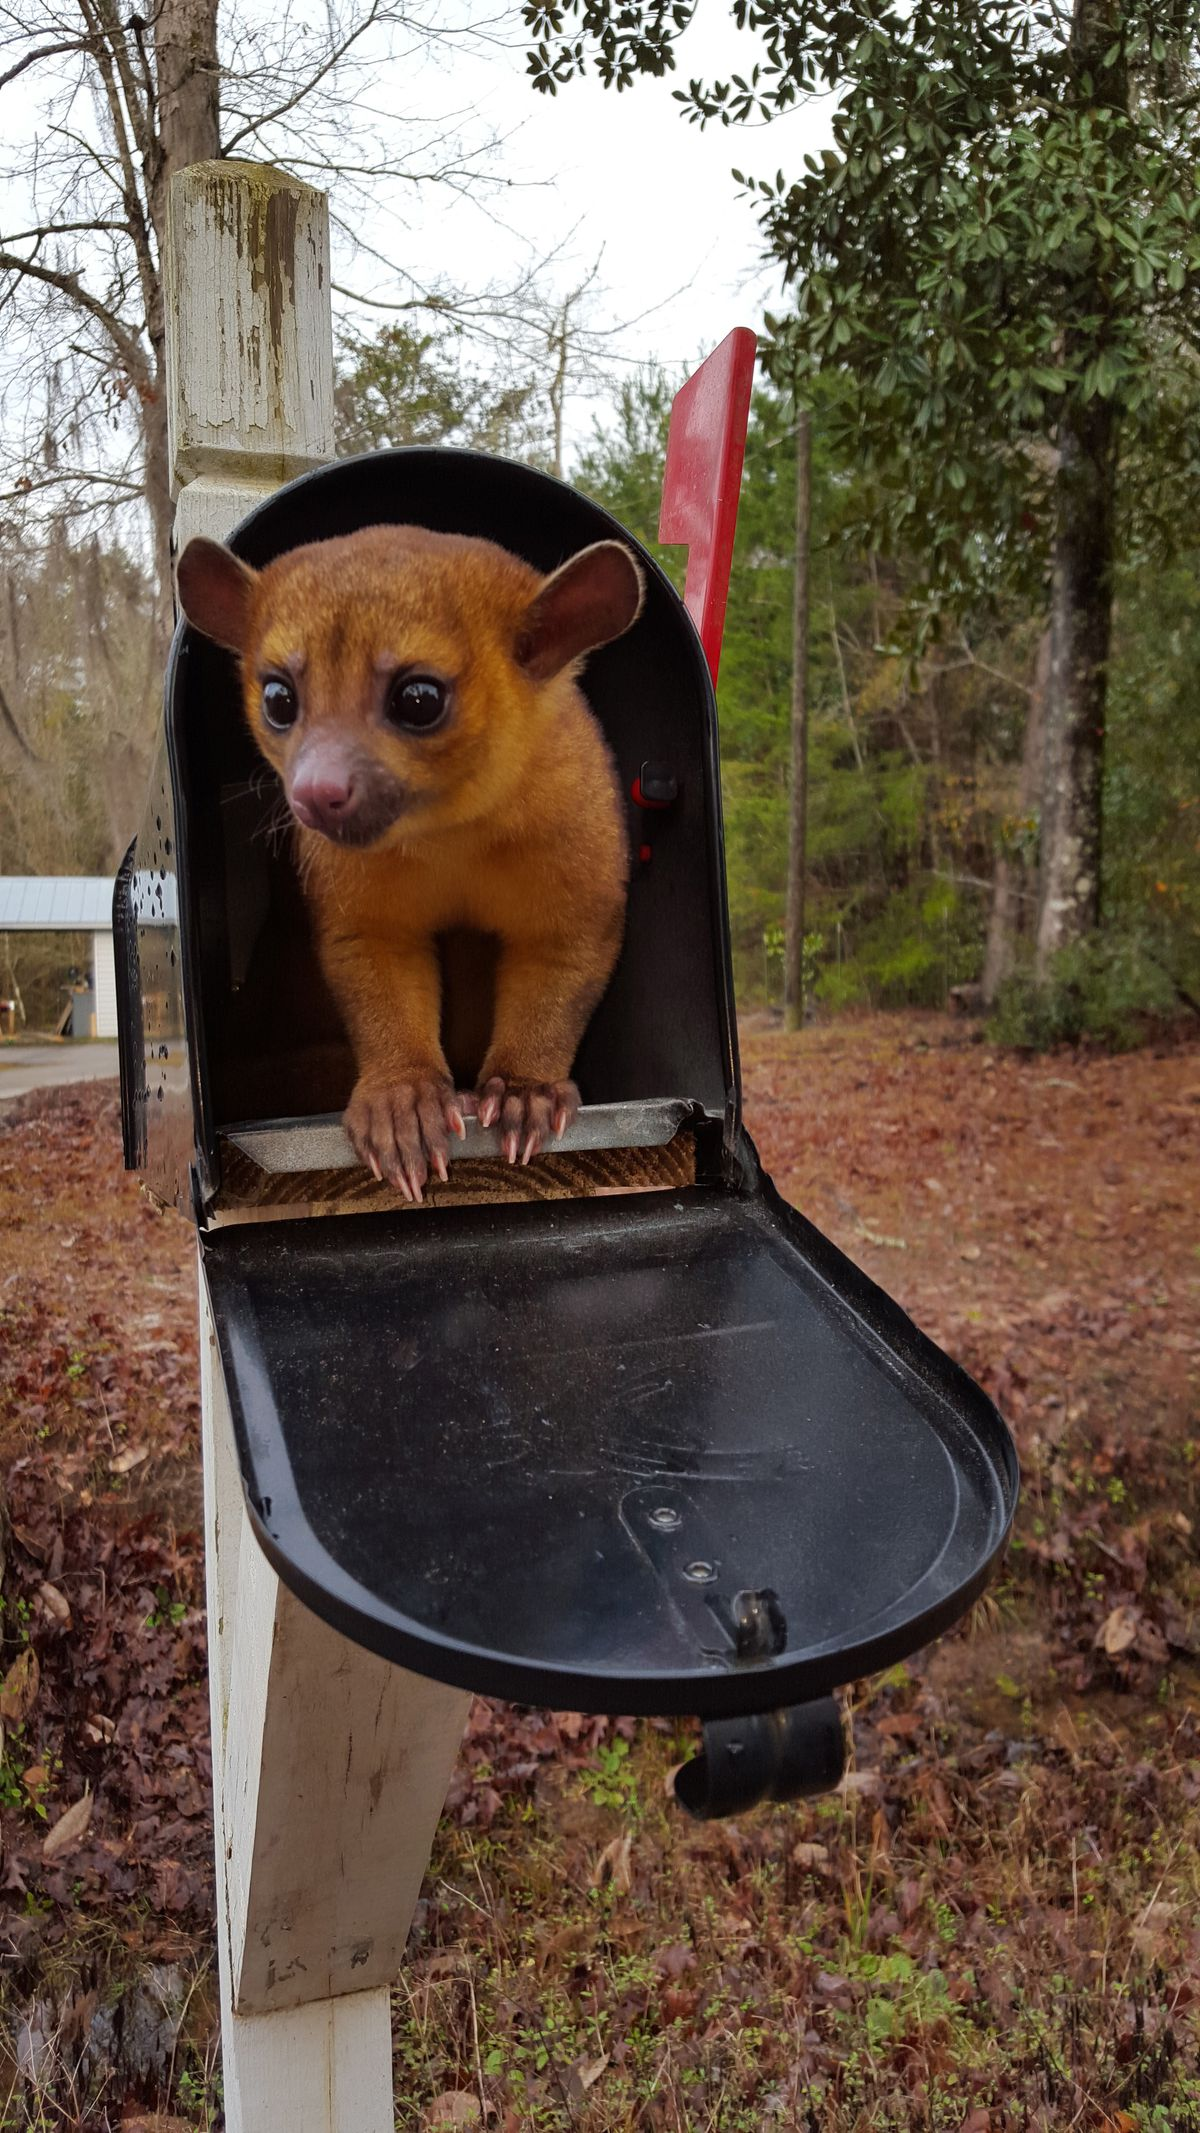 Mischievous Kinkajou Is The Pet You Never Knew You Wanted: CUTE AS FLUFF